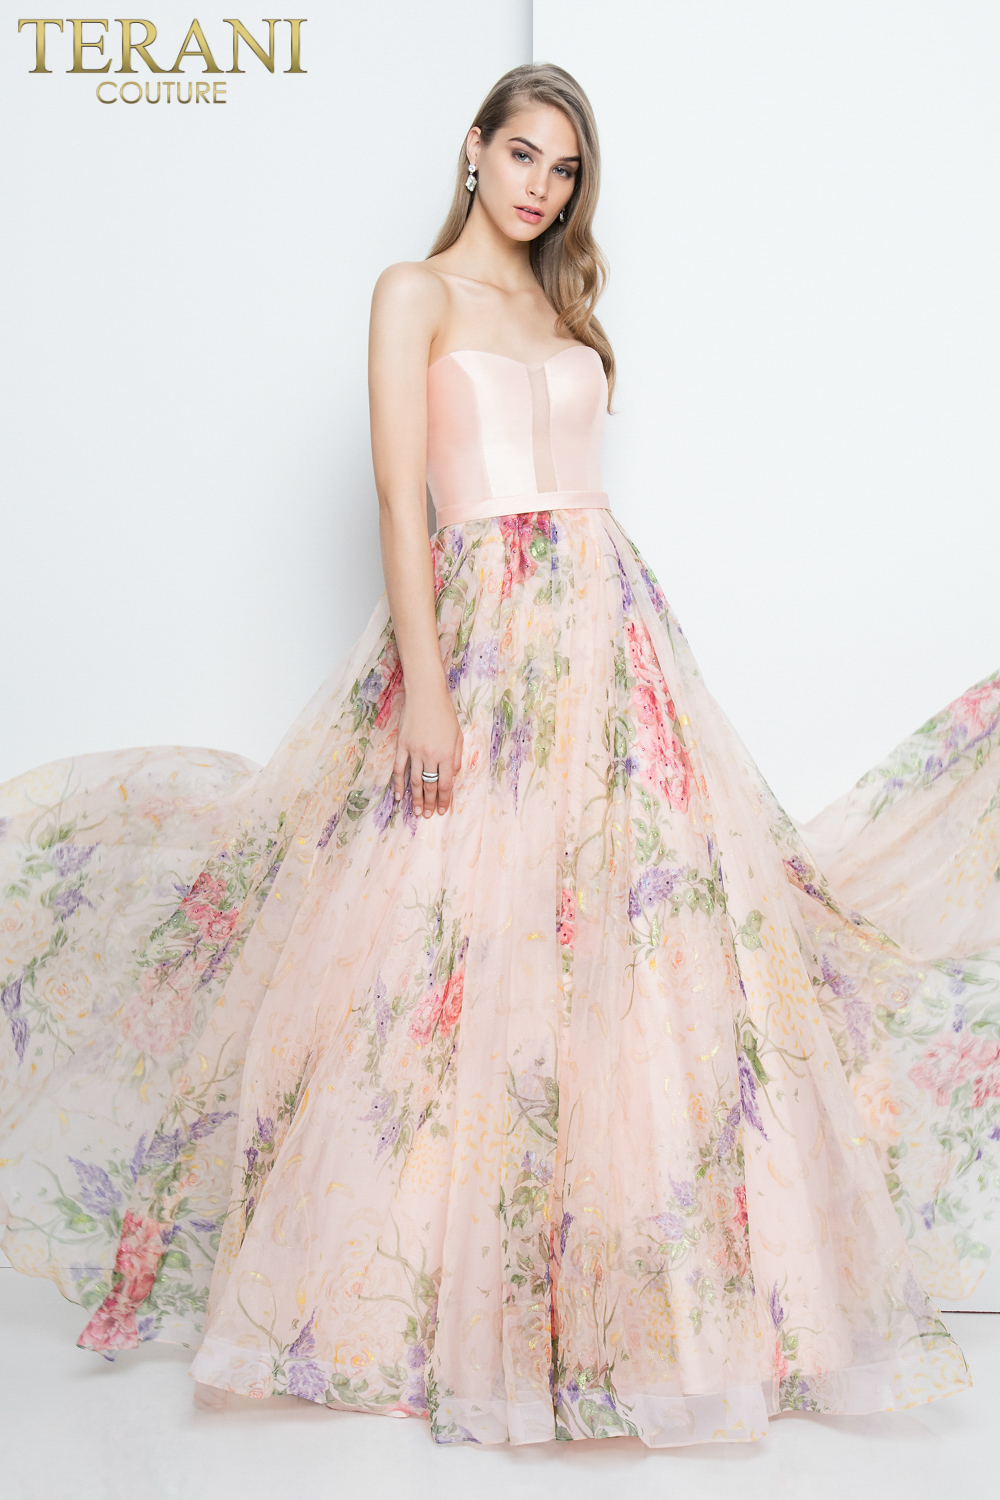 Terani Couture Floral Strapless Organza Ball Skirt Prom Dress